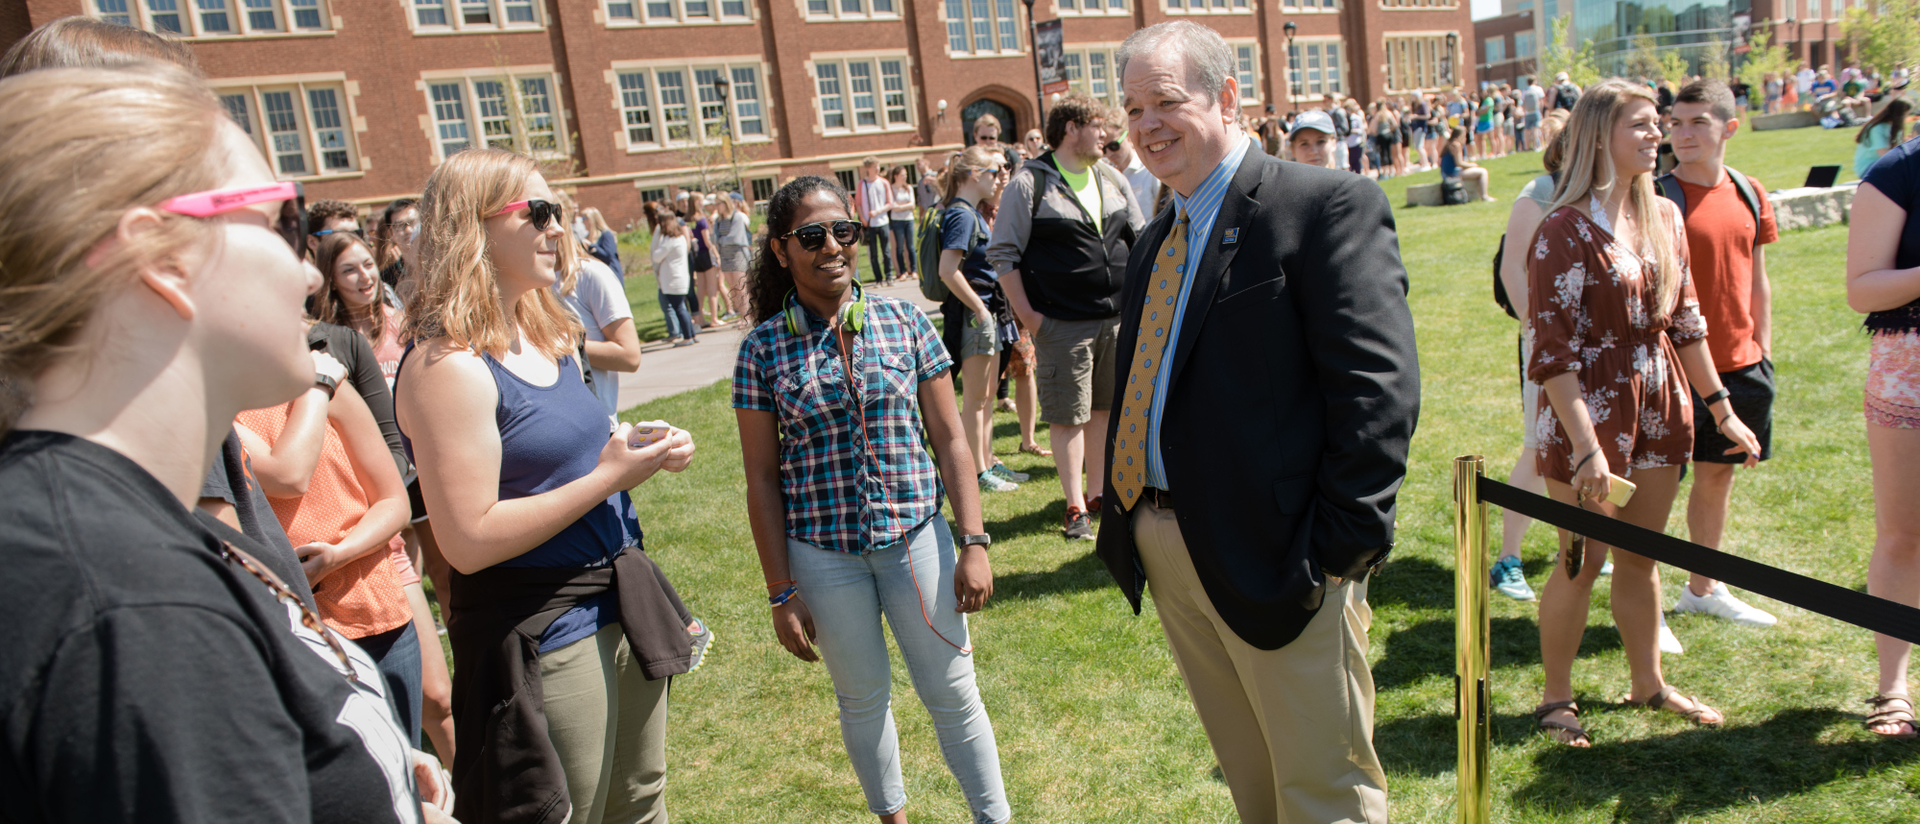 Chancellor Jim Schmidt meeting students at Springfest 2017